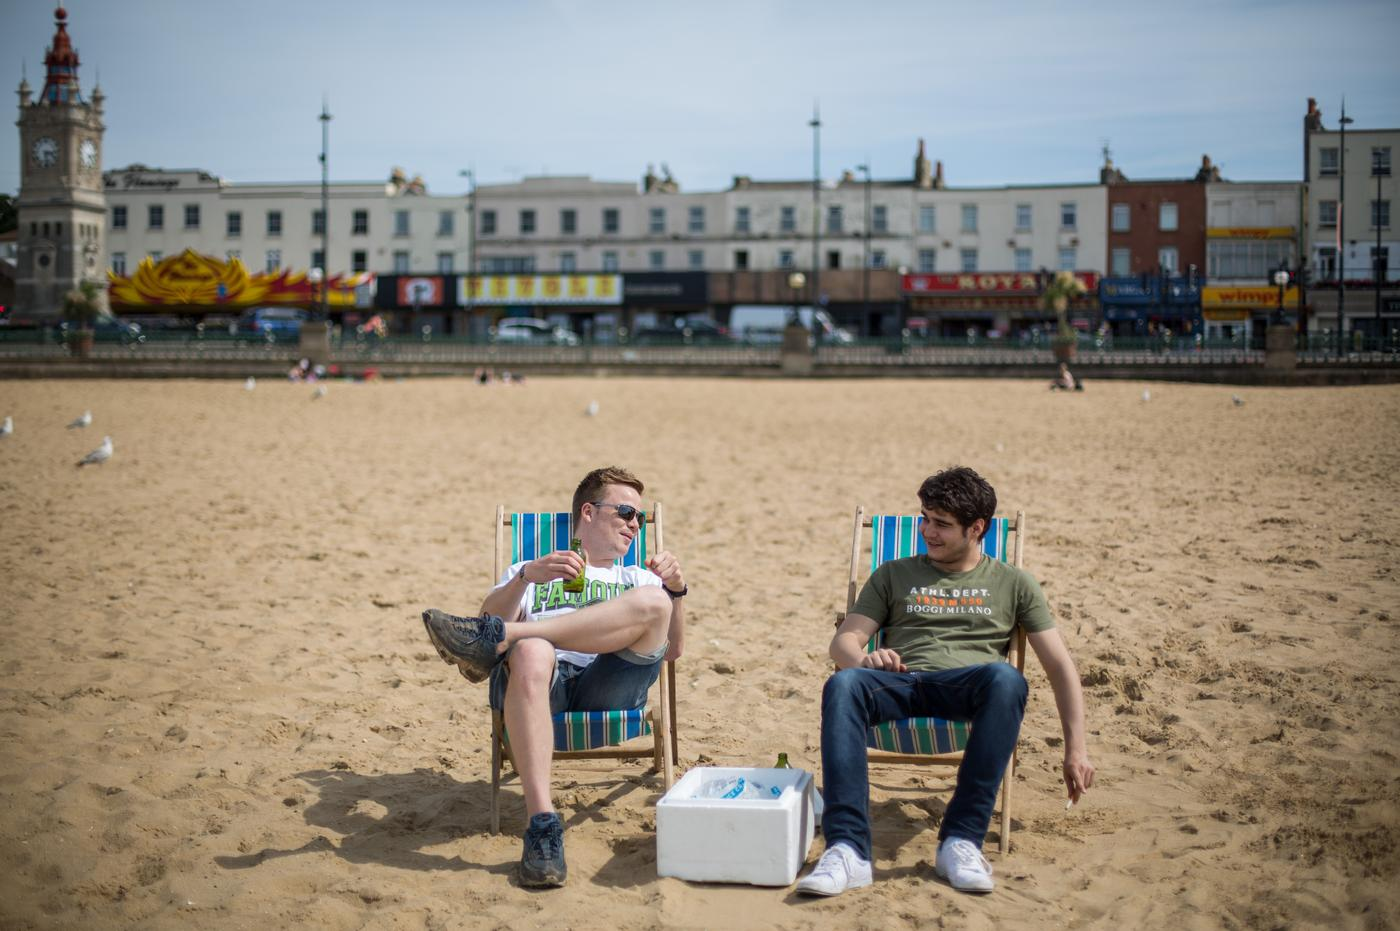 31 things that happen on every British beach